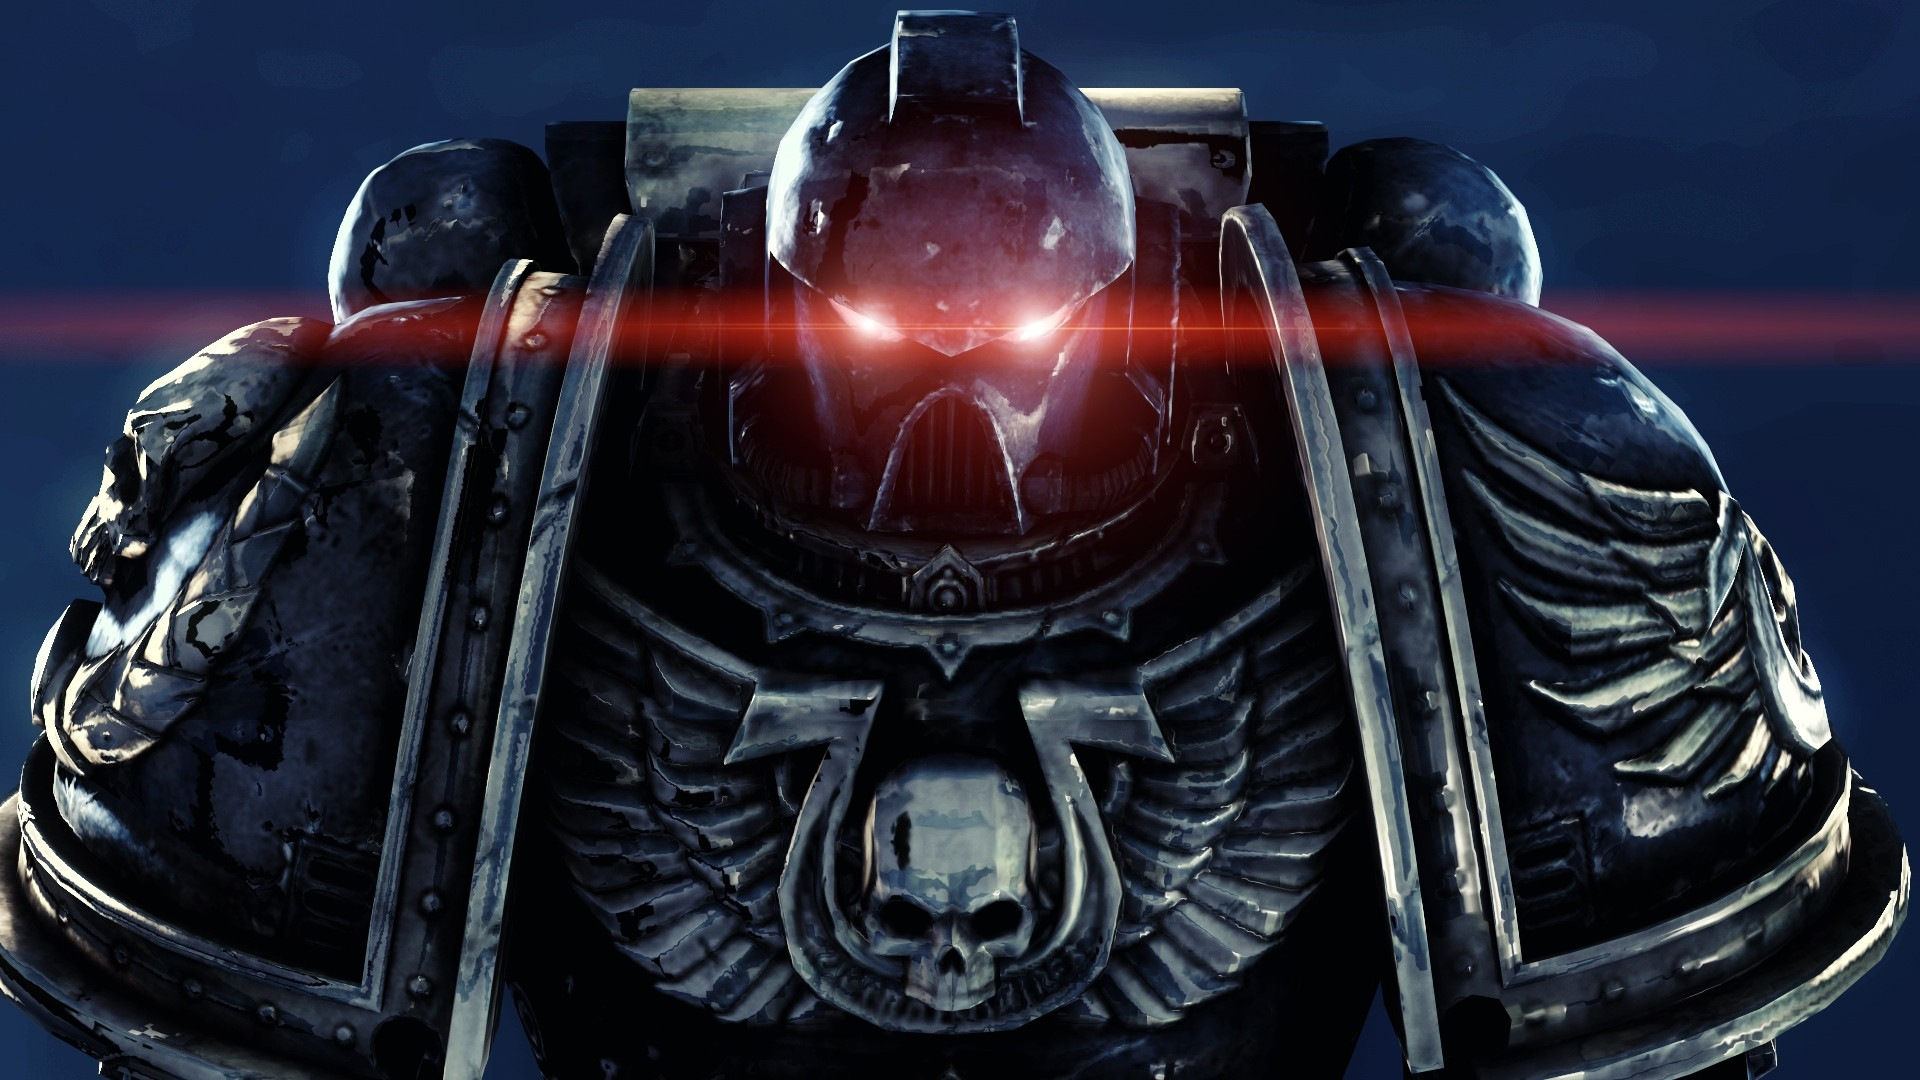 Wallpapers And Other Space Marine Related Art Warhammer 1920x1080